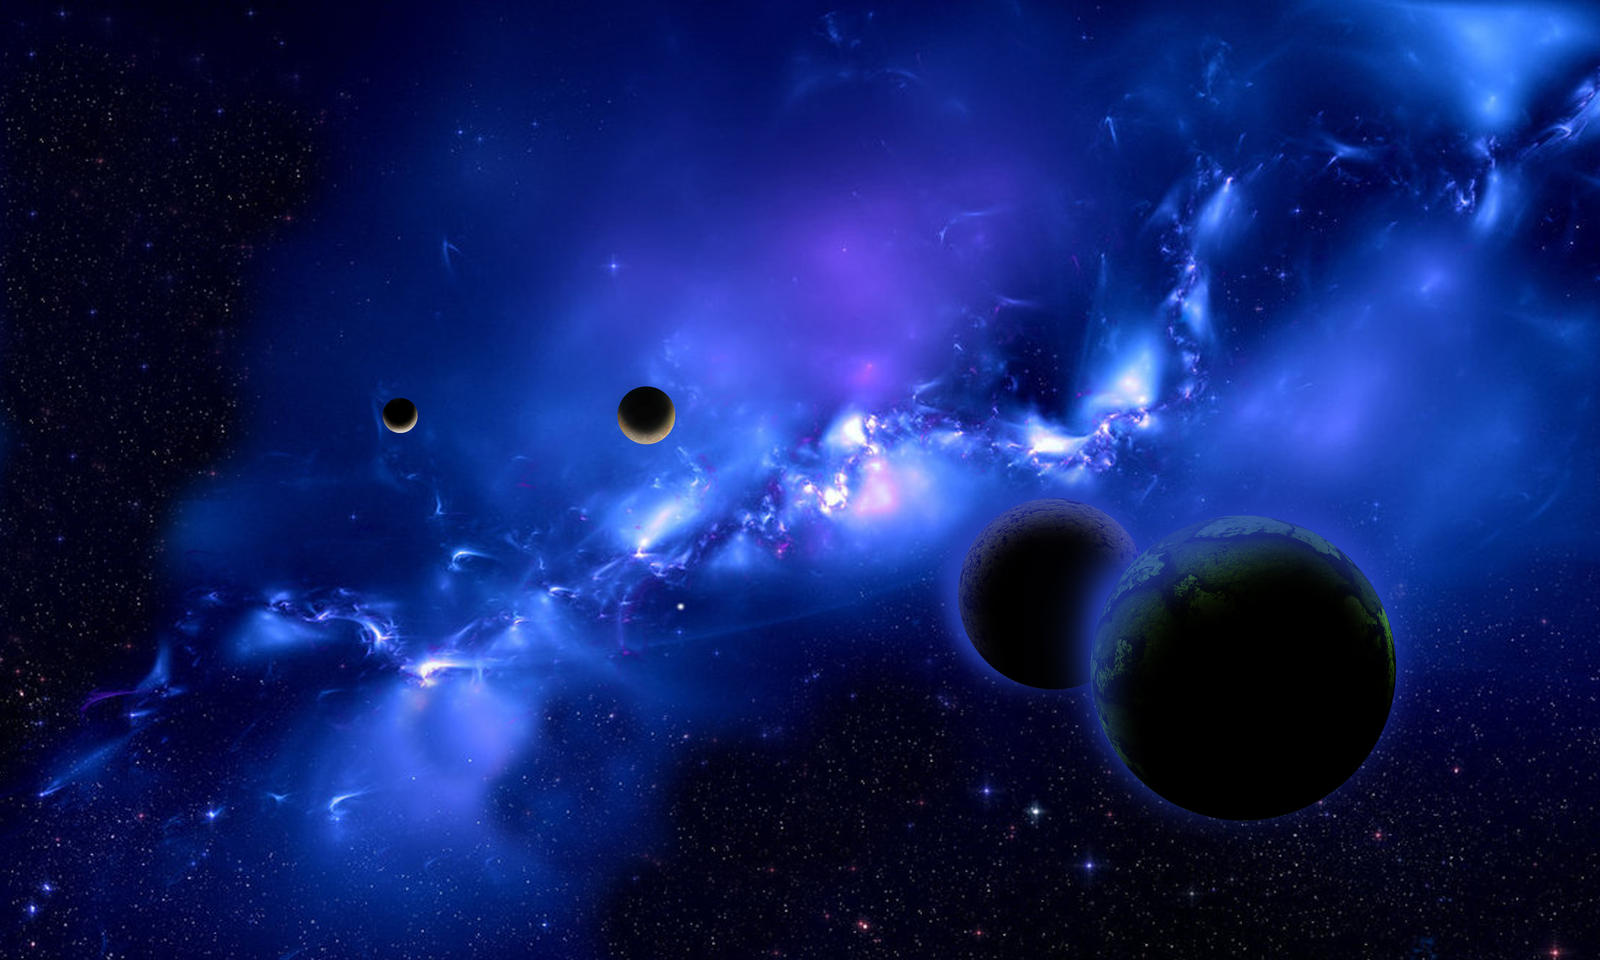 planets in a blue nebula by Johndoop on DeviantArt